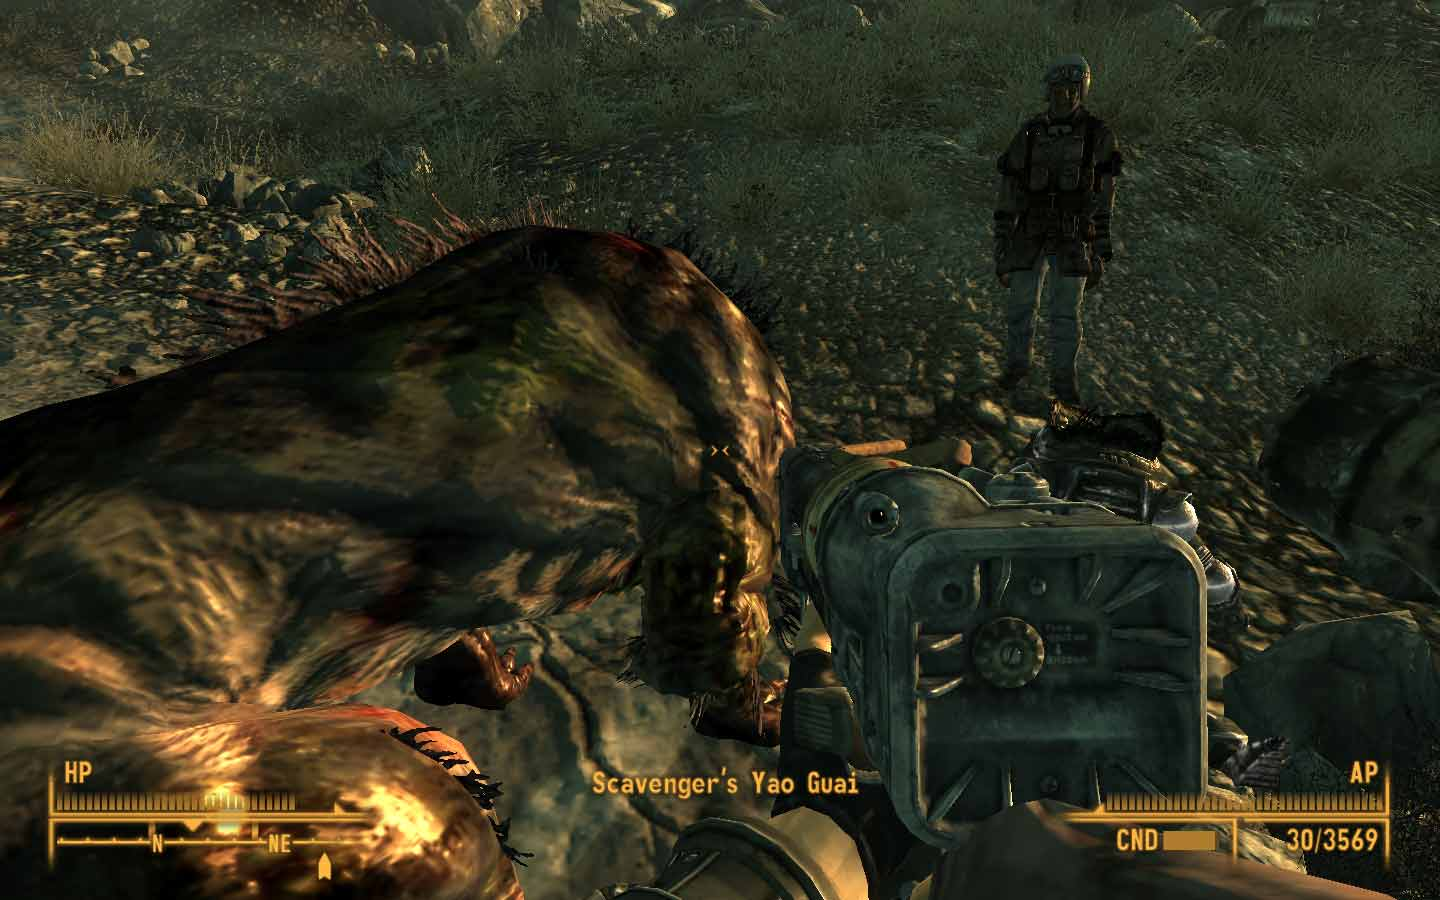 How do you spawn weapons in fallout 3 on the PC - The QA wiki